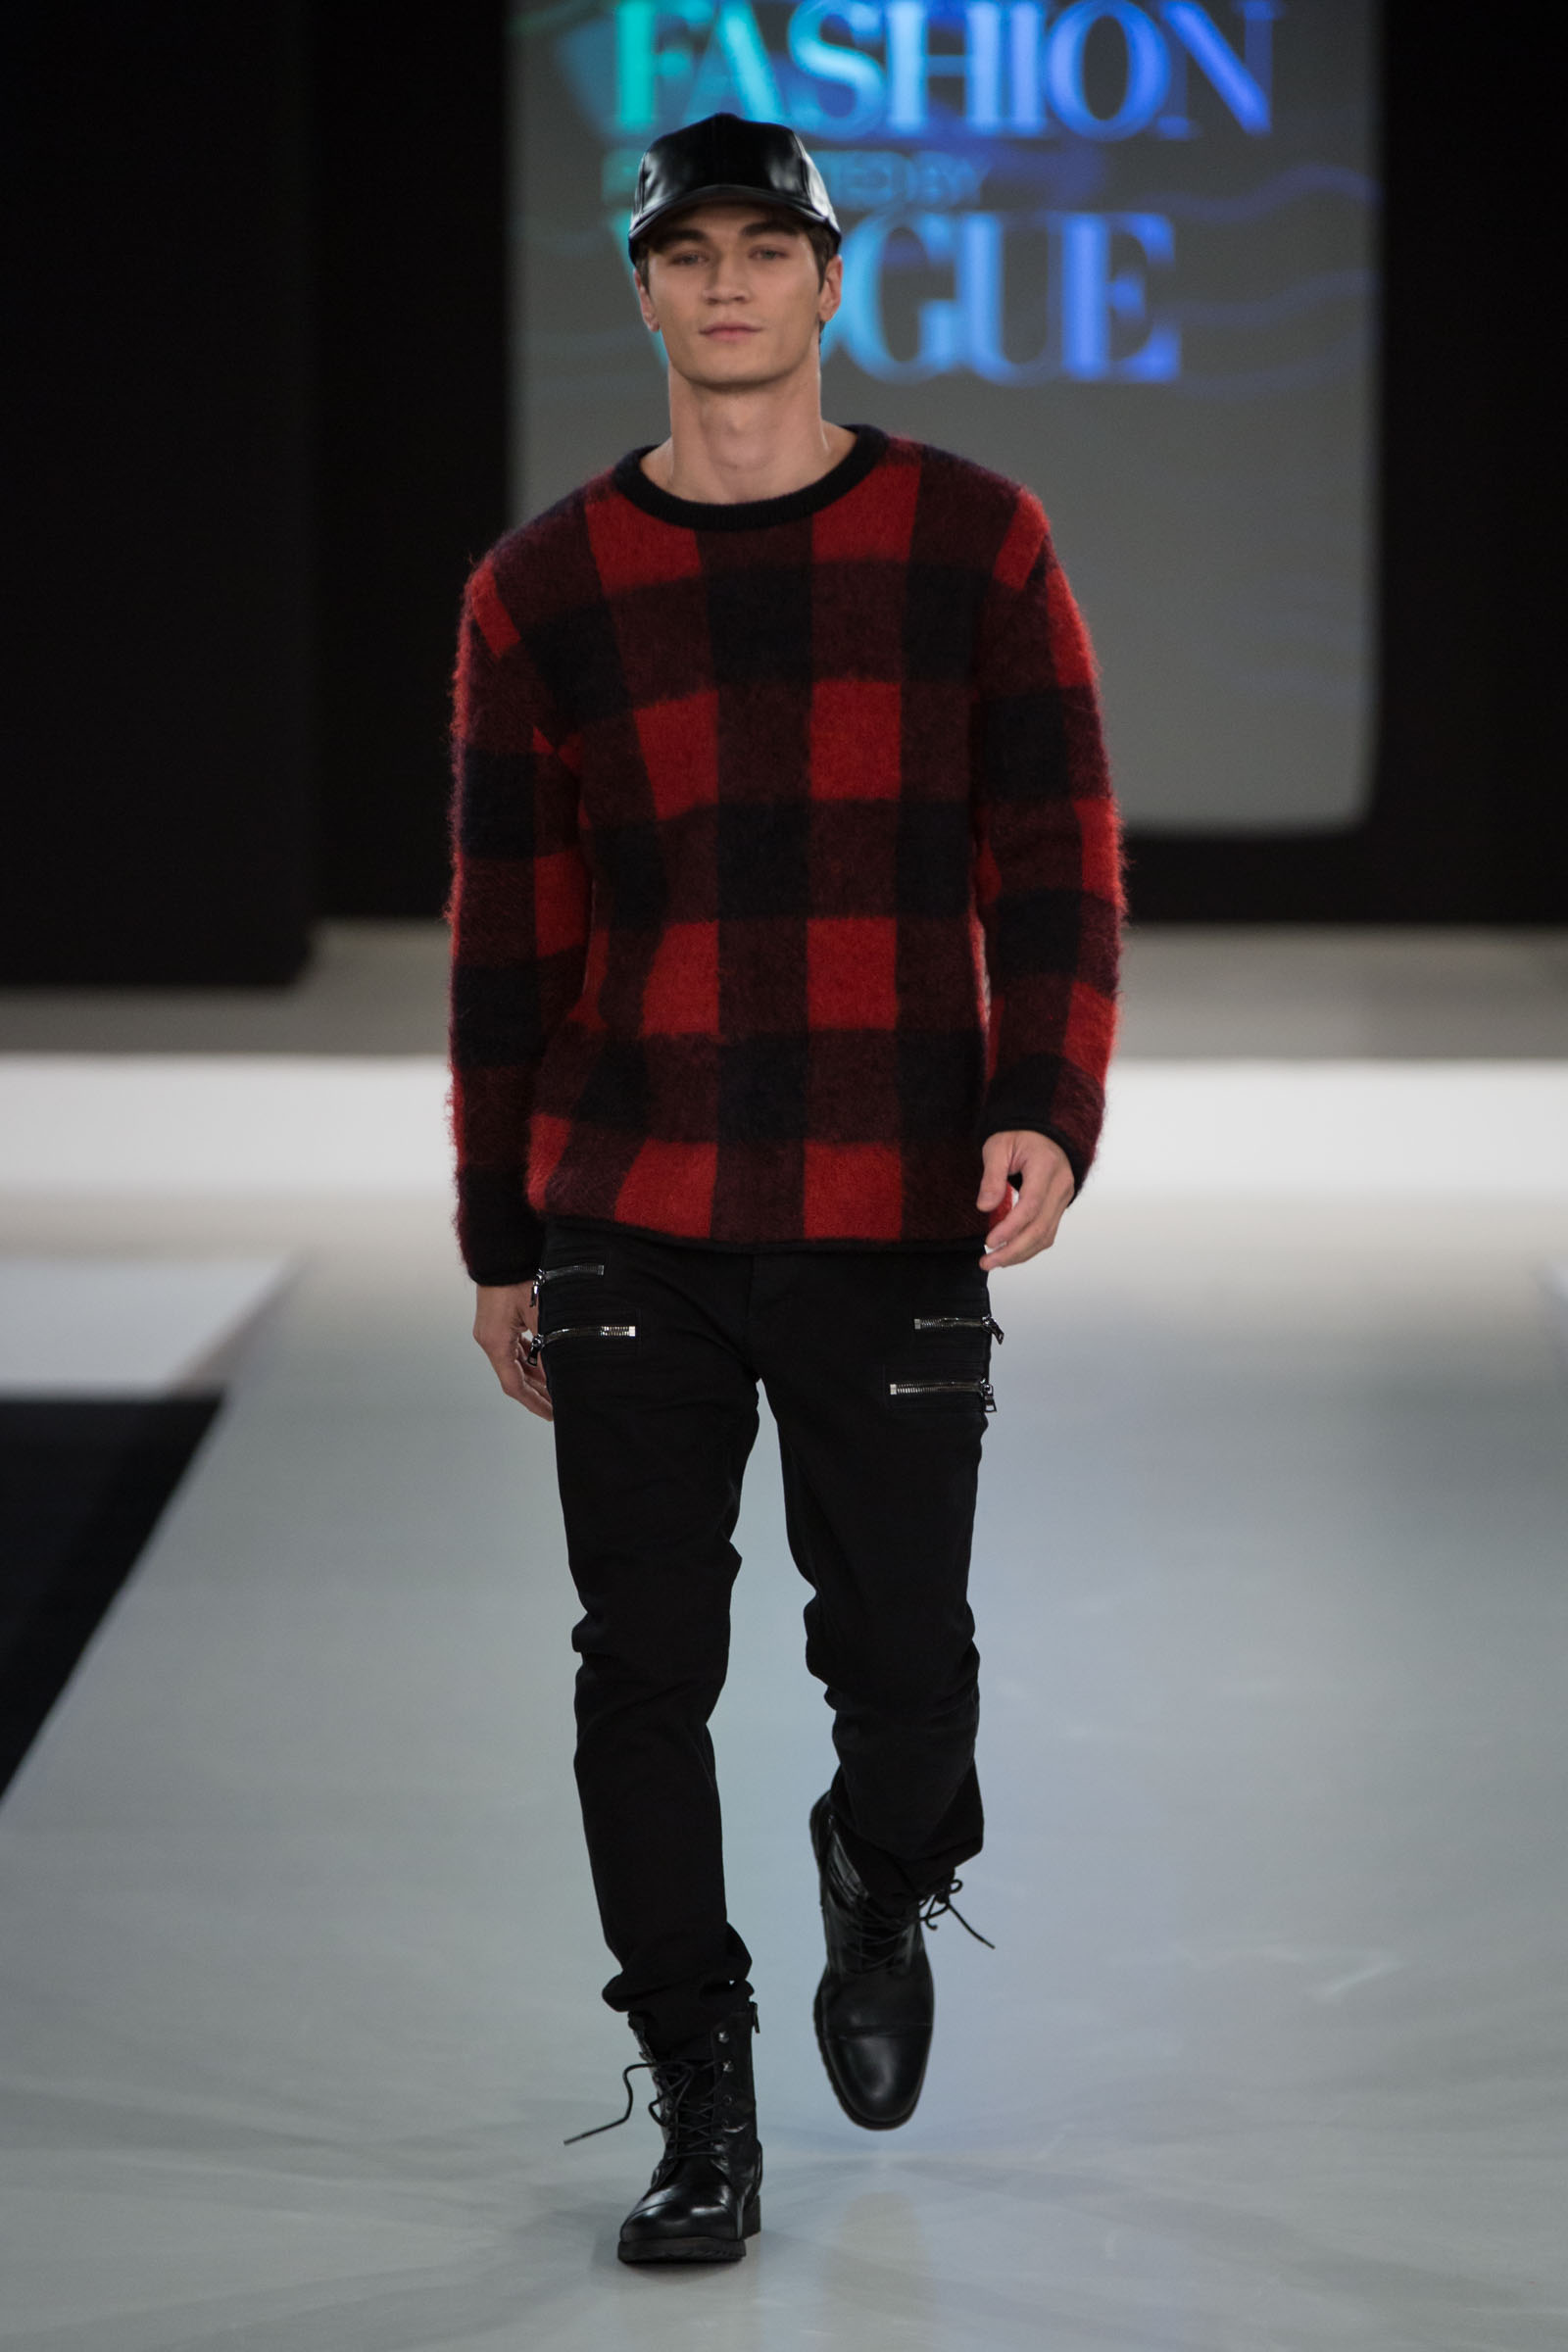 Valentino plaid sweater, Hudson Jeans and PB baseball cap from Nordstrom, Also combat boots